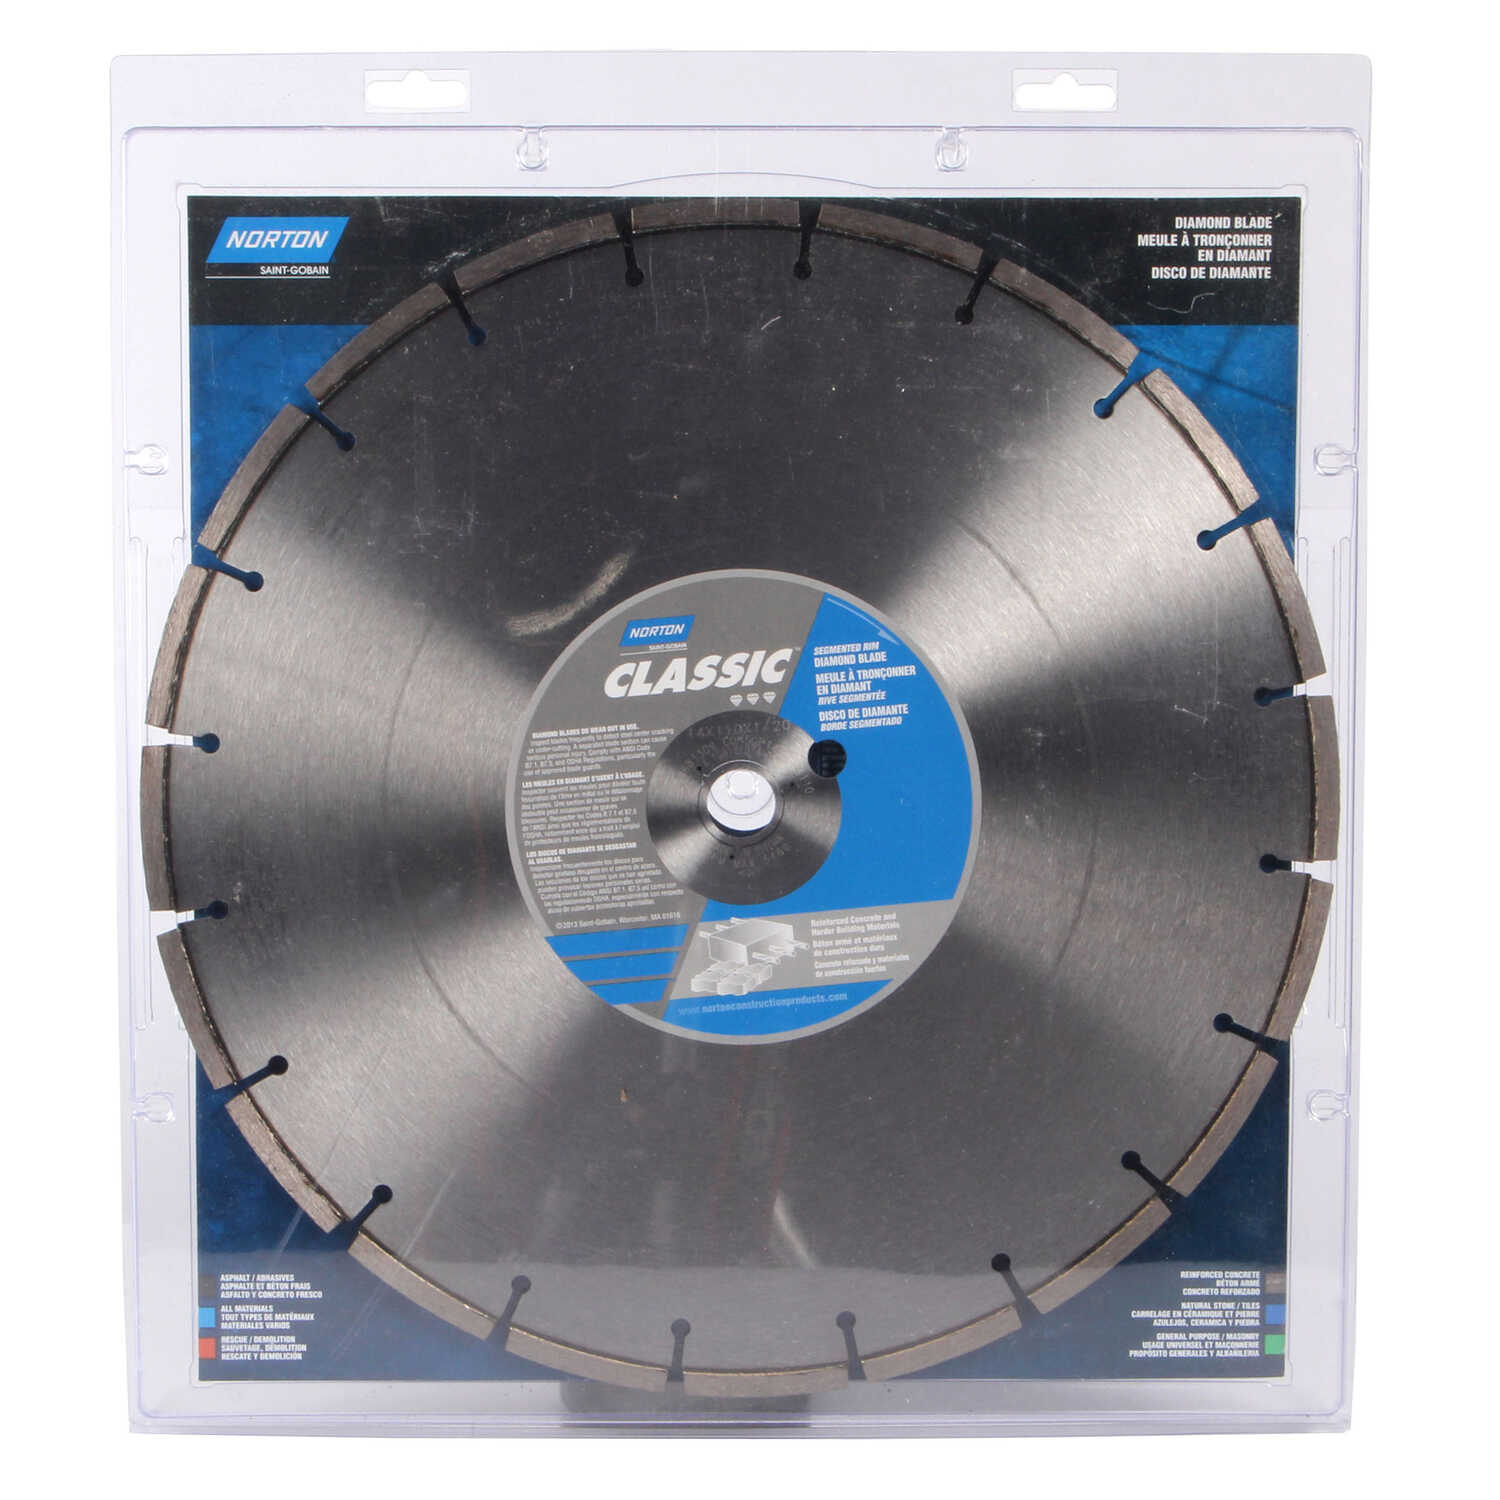 Norton  Classic  14  0.11 in.  Segmented Rim Saw Blade  1 in./20 mm  1 pk Diamond